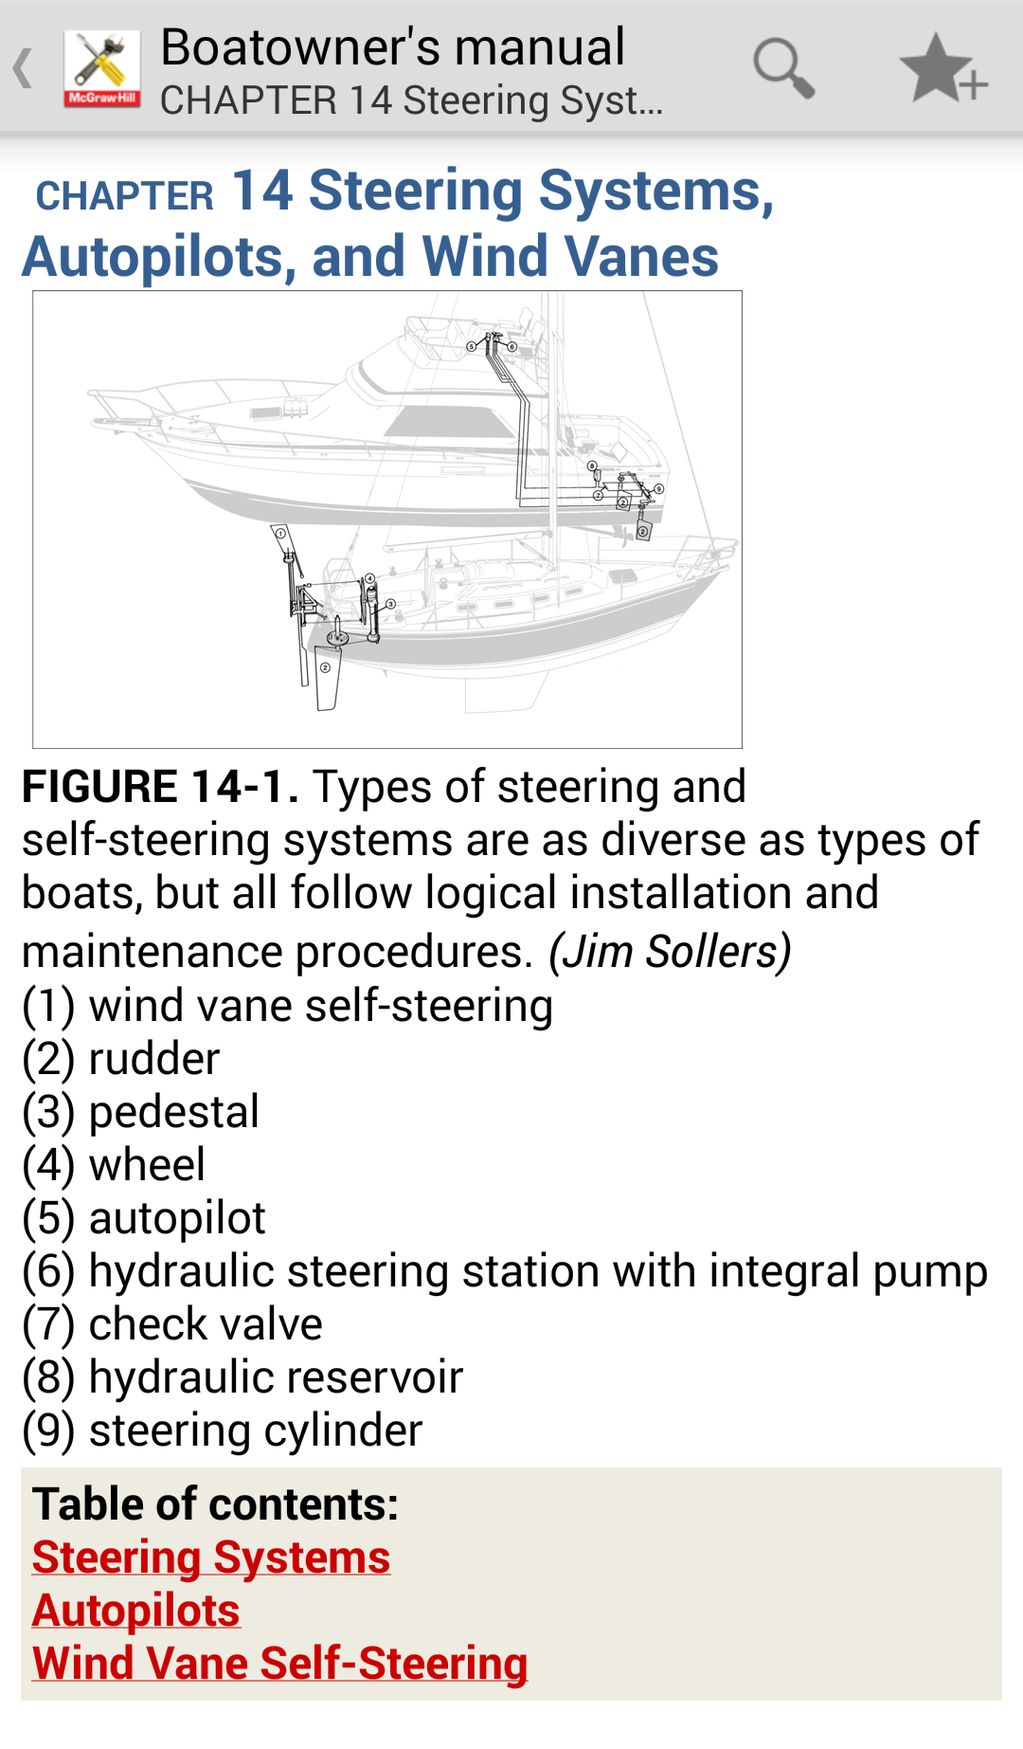 Boatowner's Mechanical and Electrical Manual Screenshot